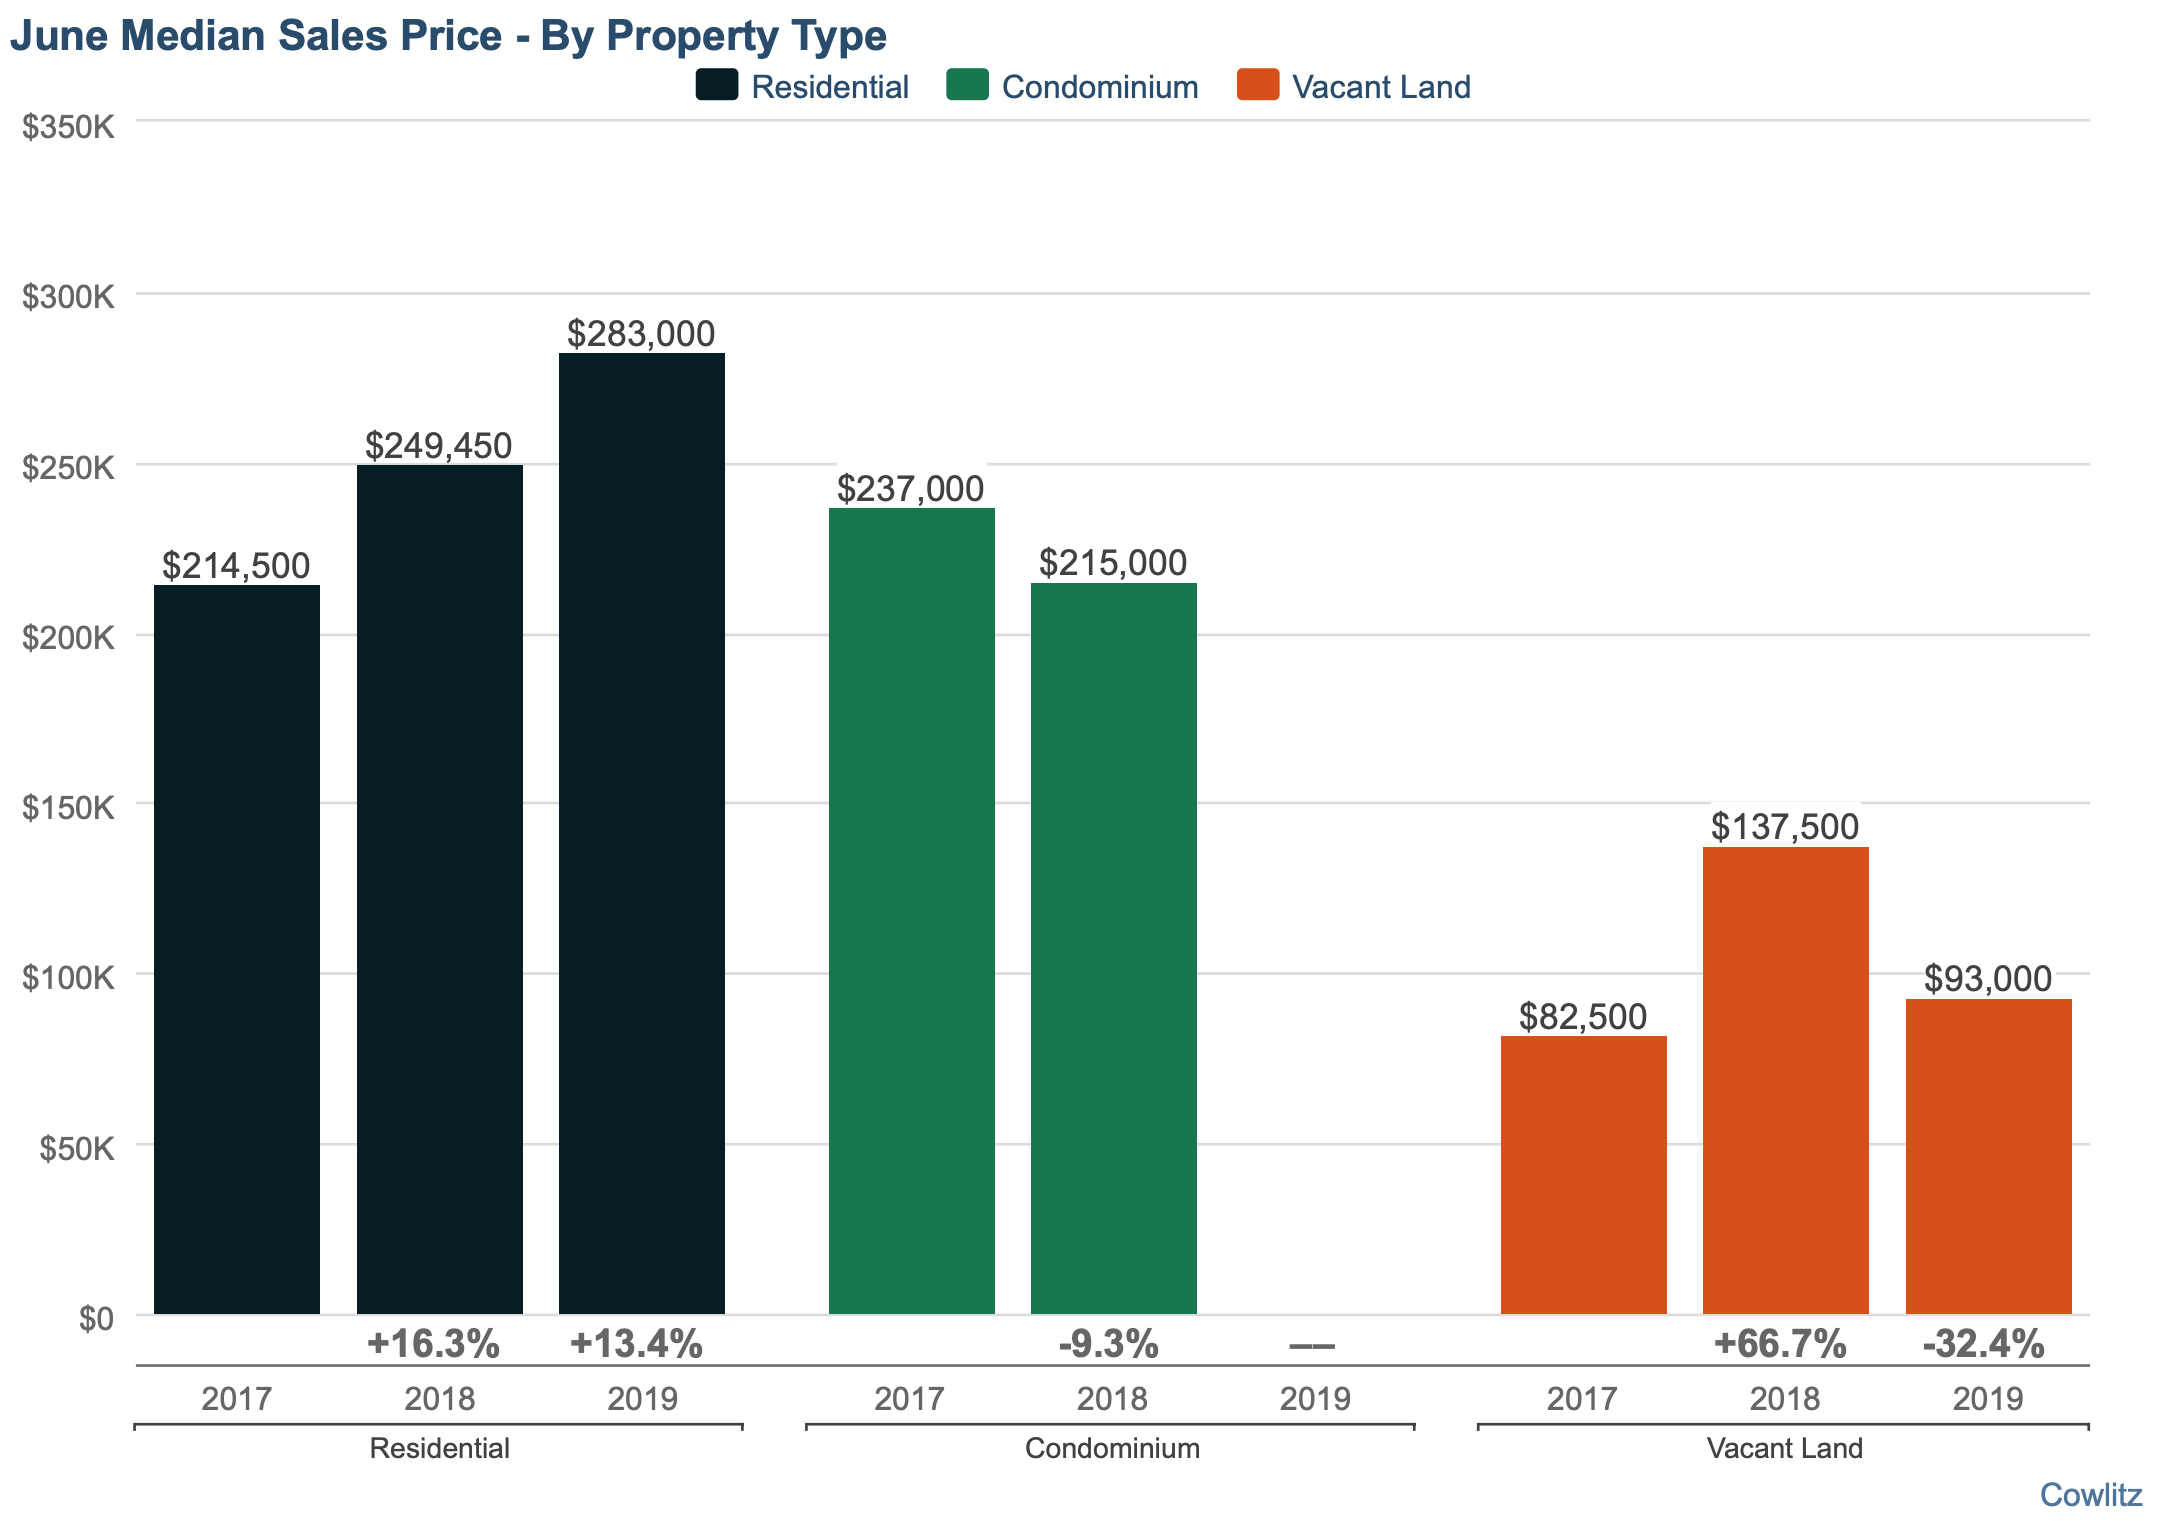 Cowlitz County Median Sales Price June 2019